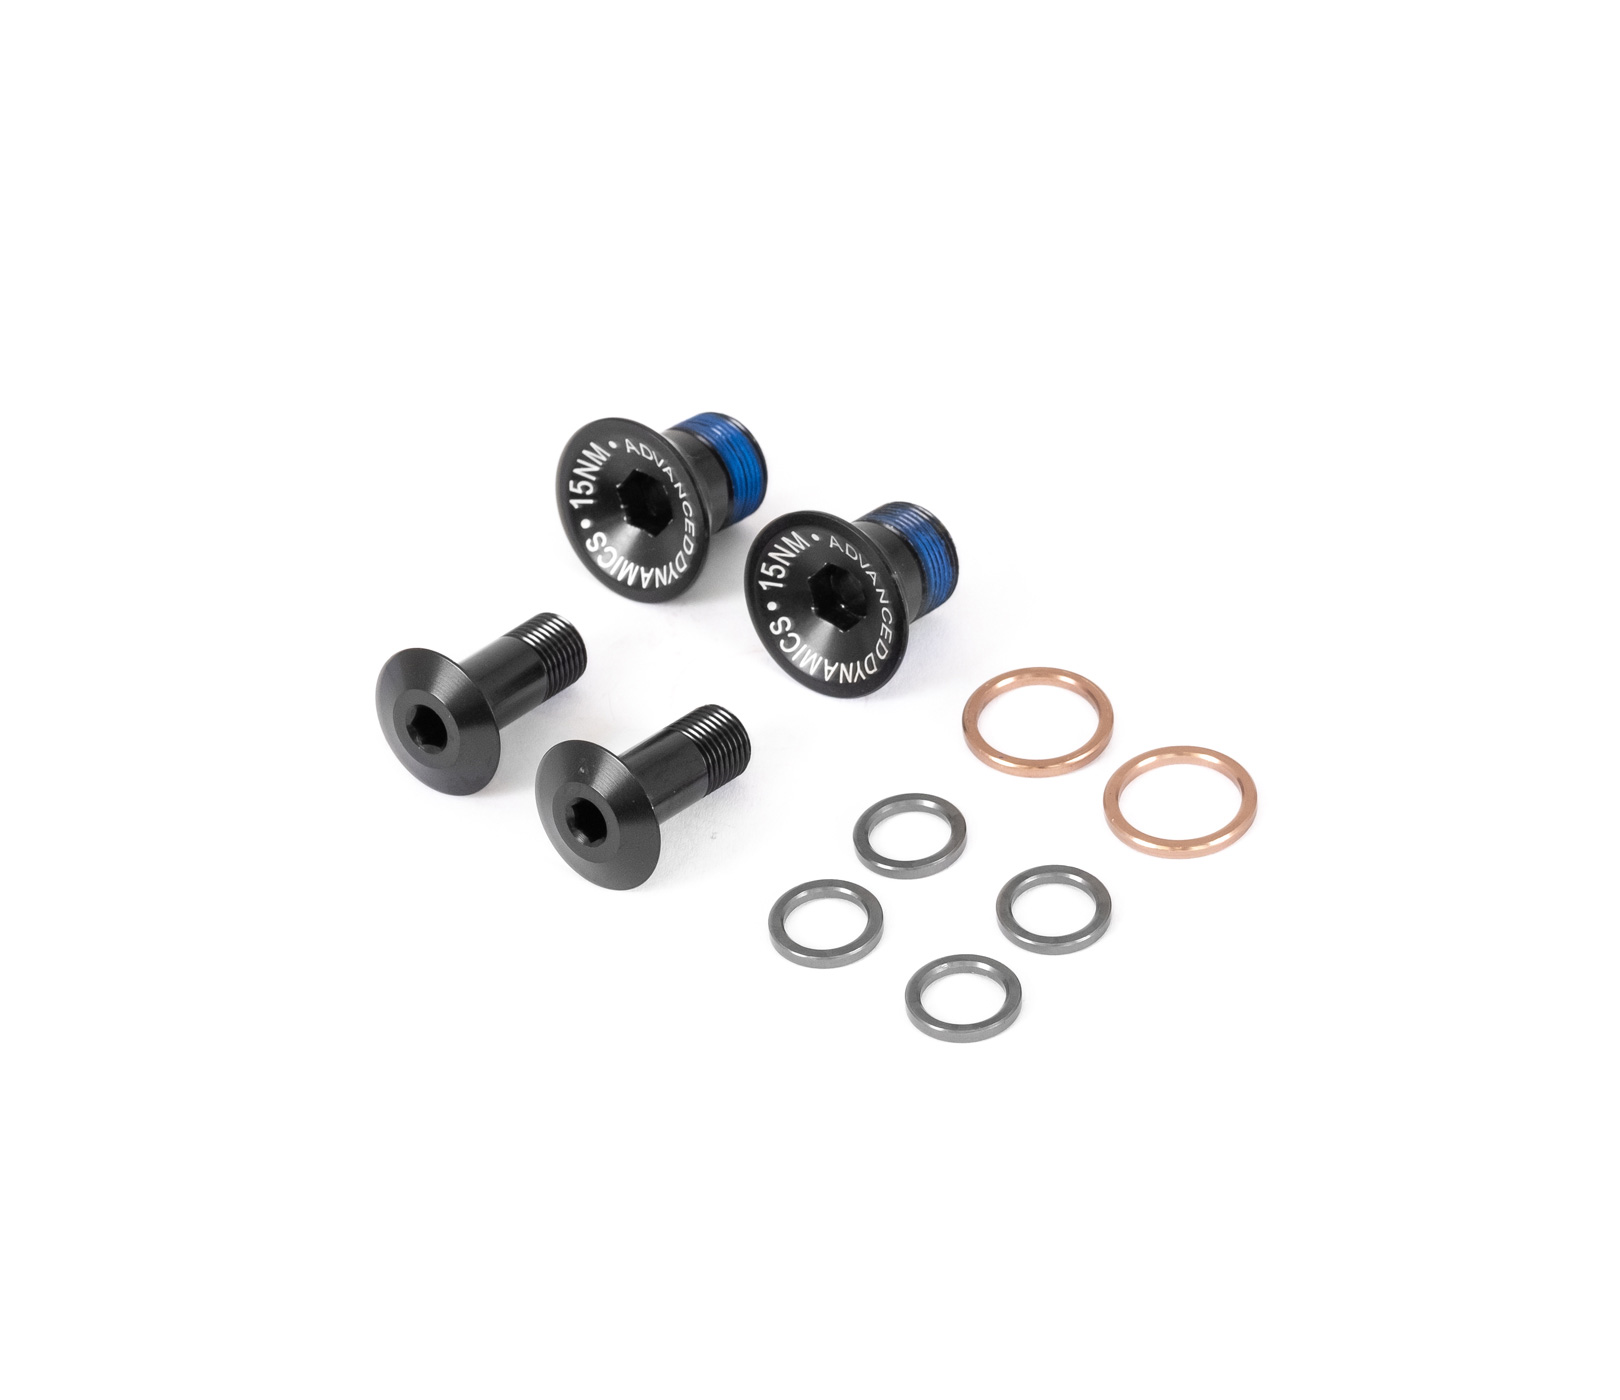 OCCAM 2020 LINKAGE HARDWARE KIT